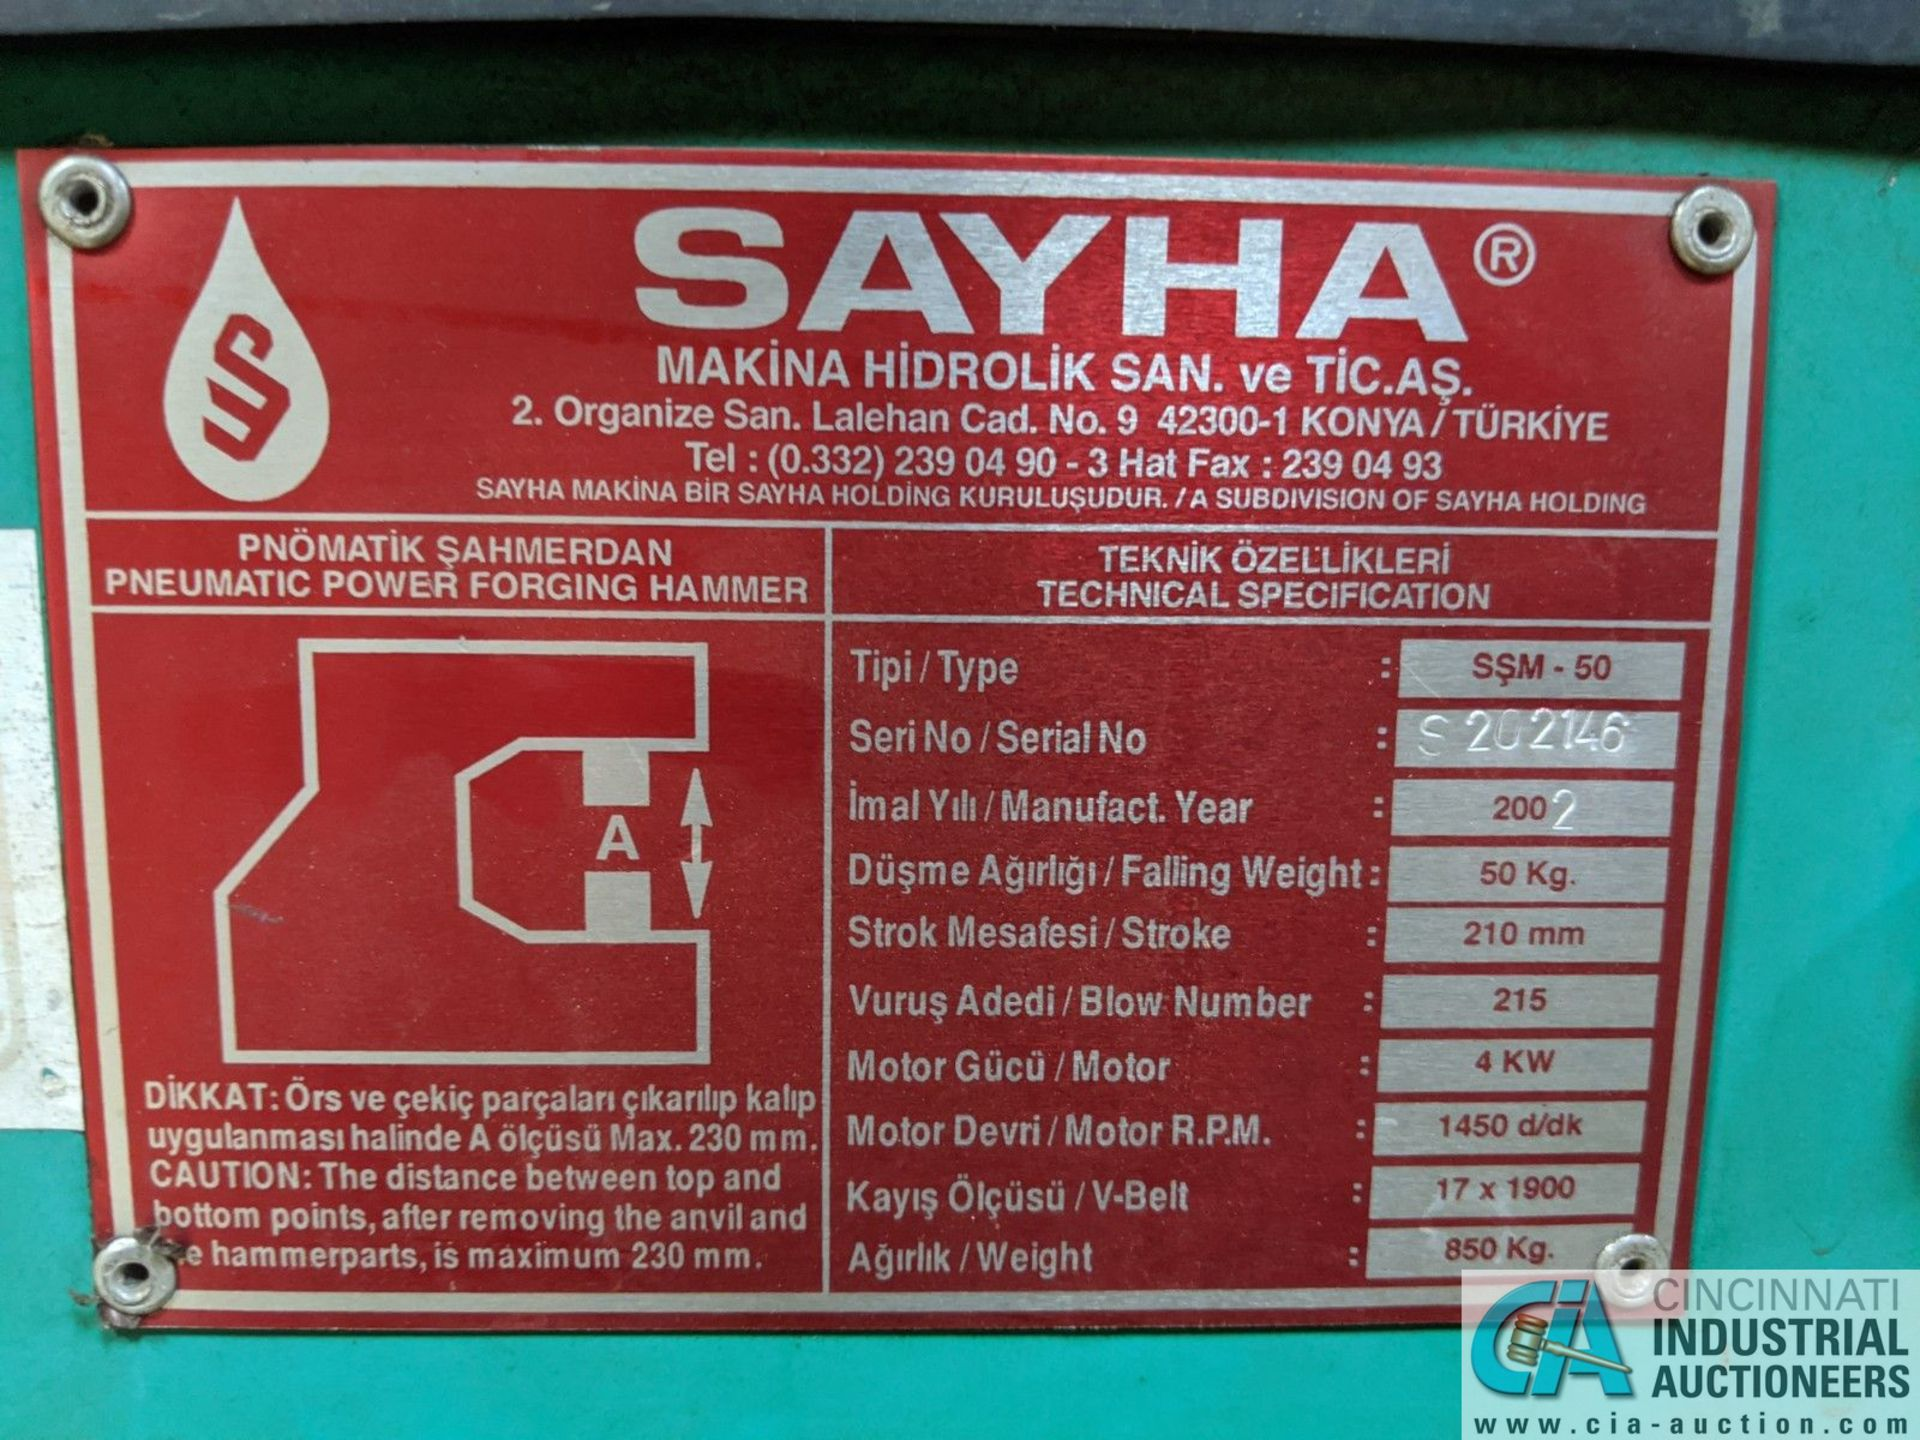 SAYHA MODEL SSM-50 POWERED FORGING HAMMER; S/N S202146, 50-KG FALLING WEIGHT, 210 MM STROKE, 4-KM - Image 7 of 7